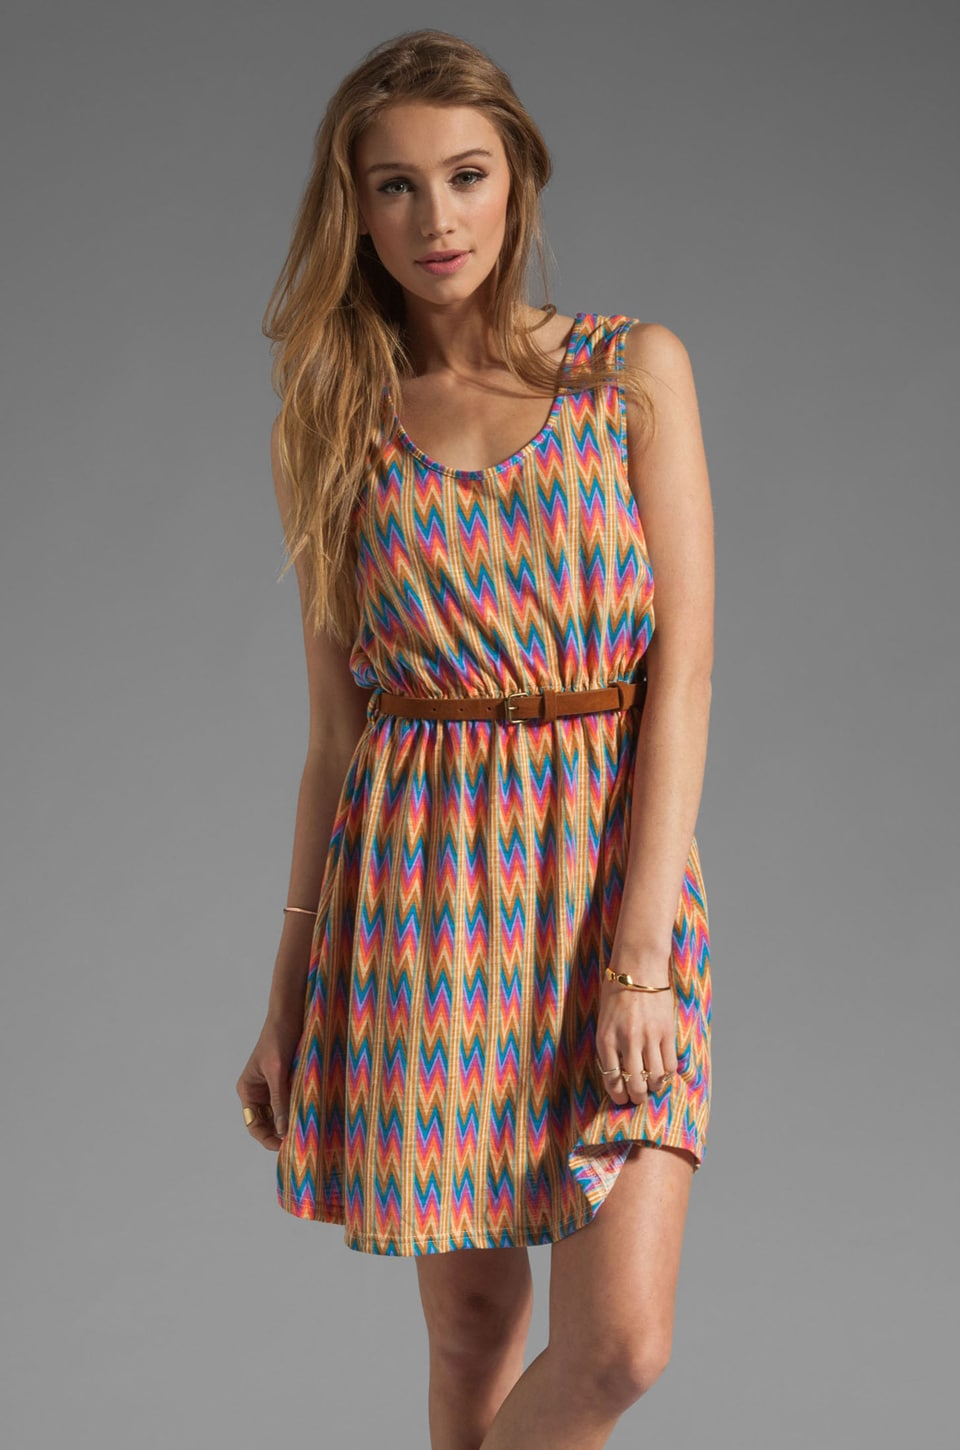 MINKPINK Paradise City Dress in Multi